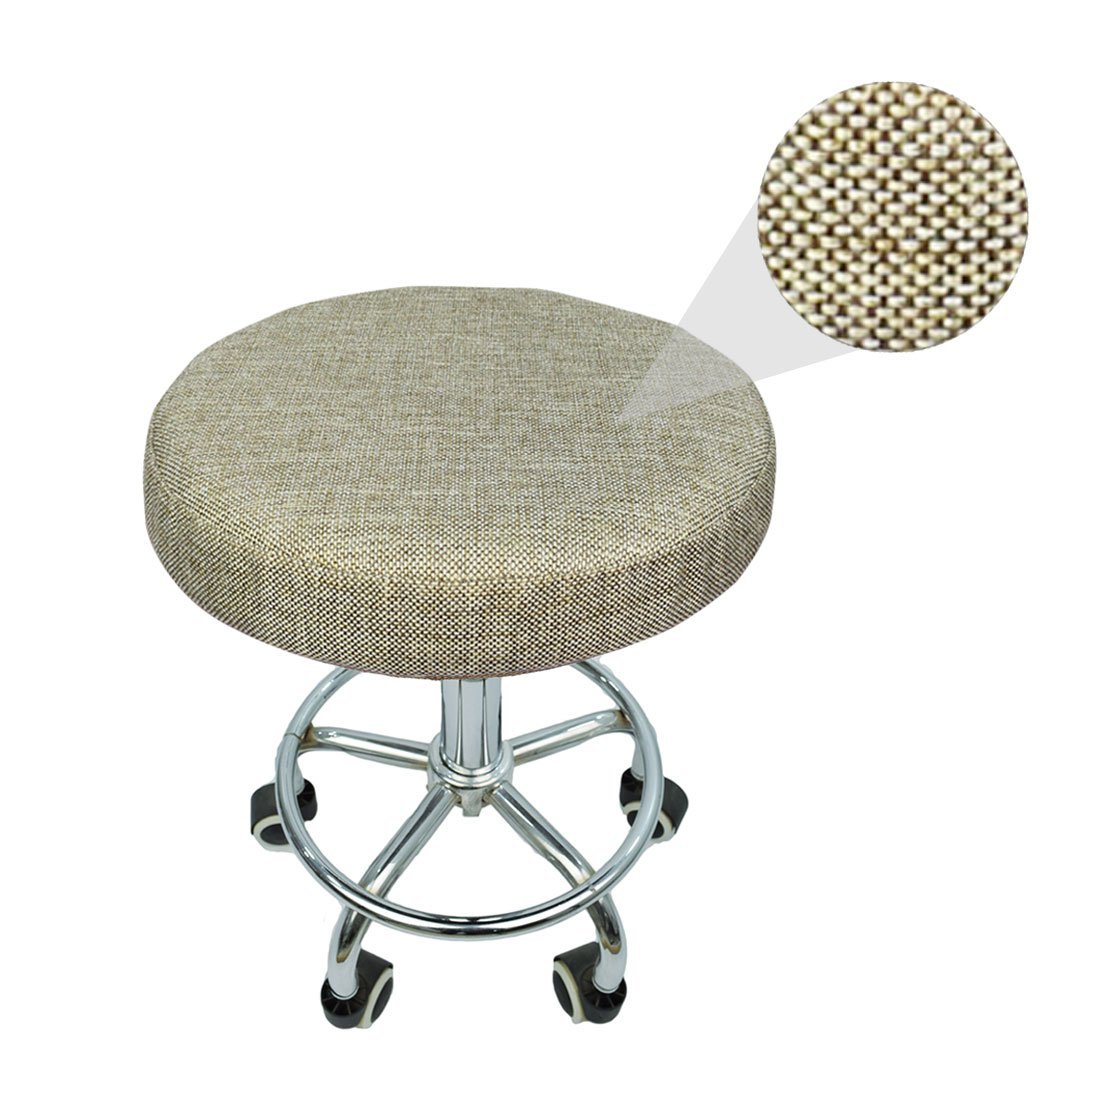 Rosavida 16 Inch Round Stool Cover en Linen with Elastic Anti-slip Round Seat Covers Protectors for Barstool #3